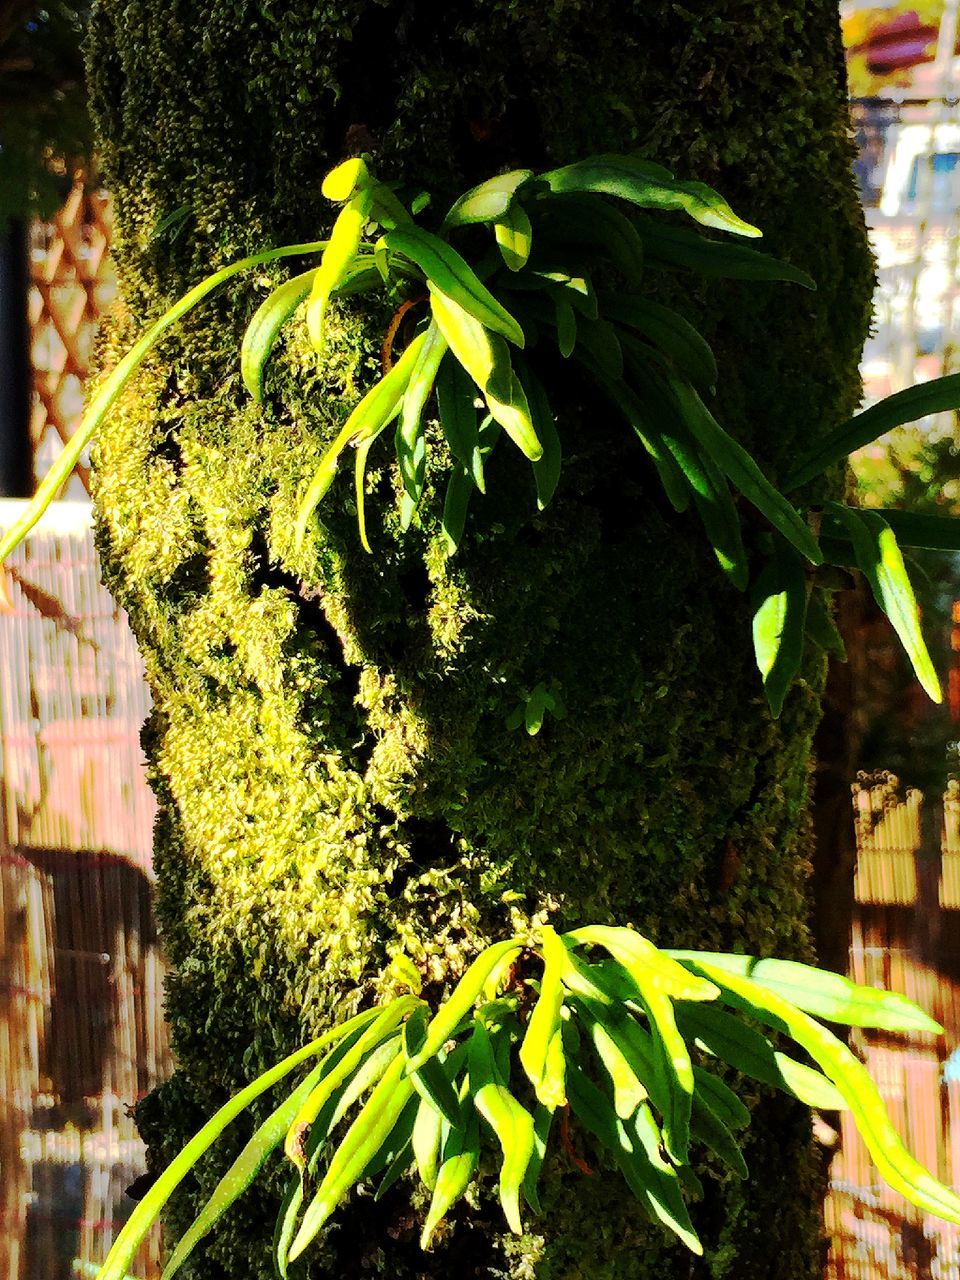 growth, green color, plant, no people, tree, leaf, outdoors, nature, close-up, day, ivy, freshness, beauty in nature